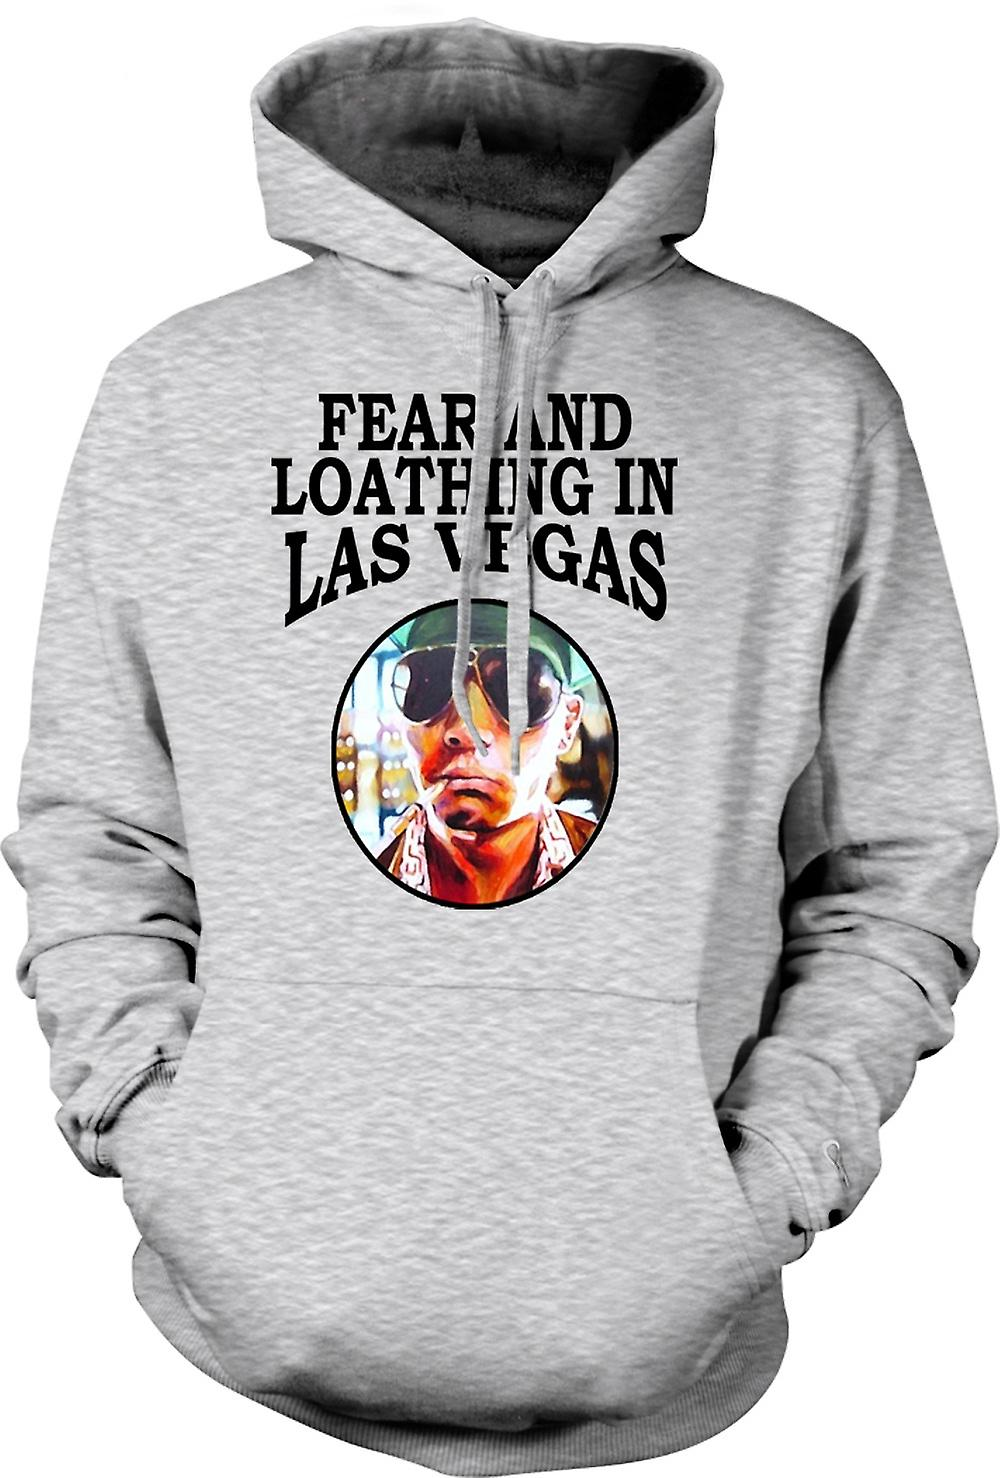 Herren Hoodie - Angst Loathing - Hunter S Thompson Lustig - Film